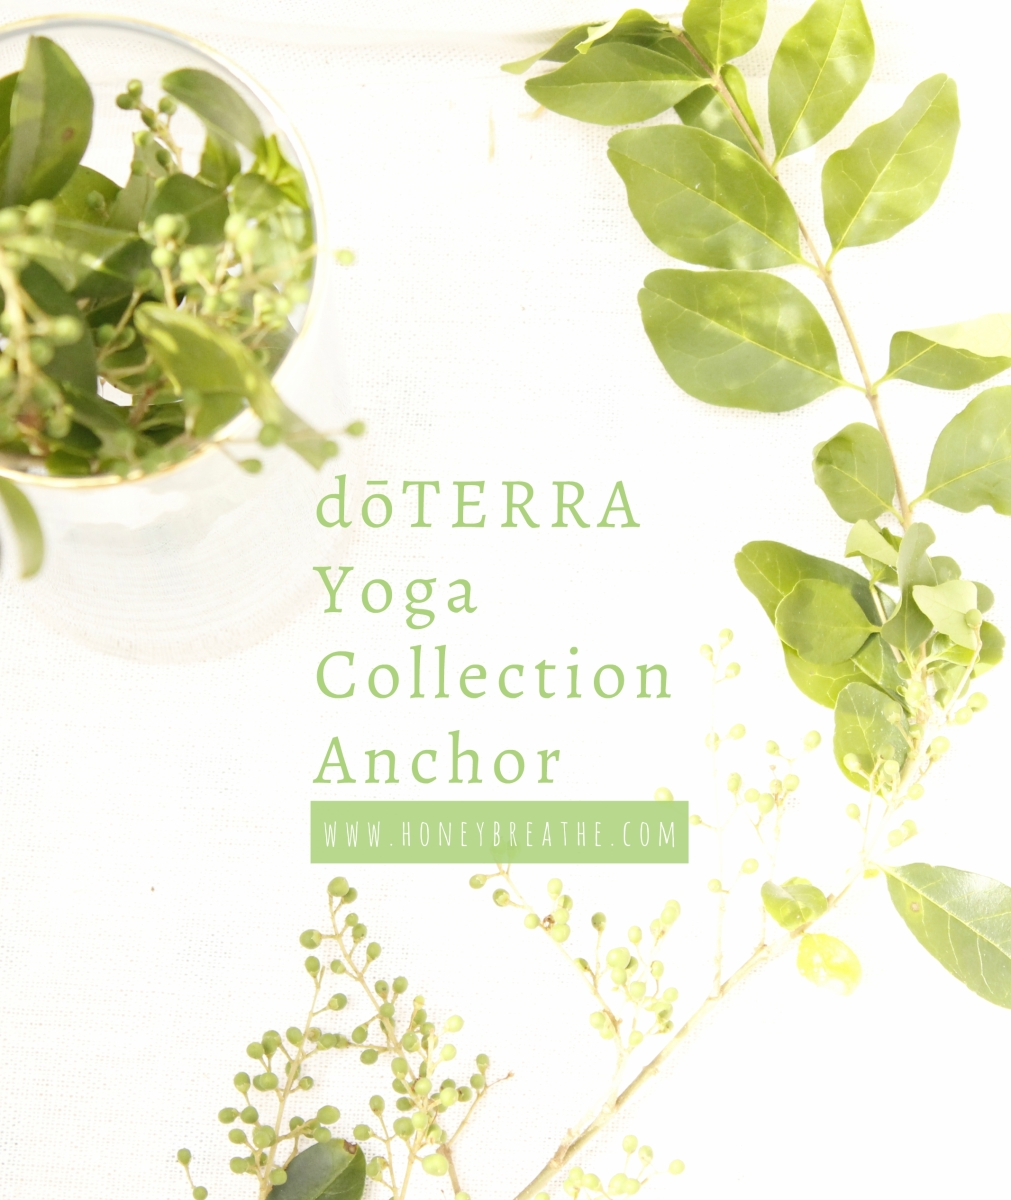 The dōTERRA Yoga Collection: Anchor